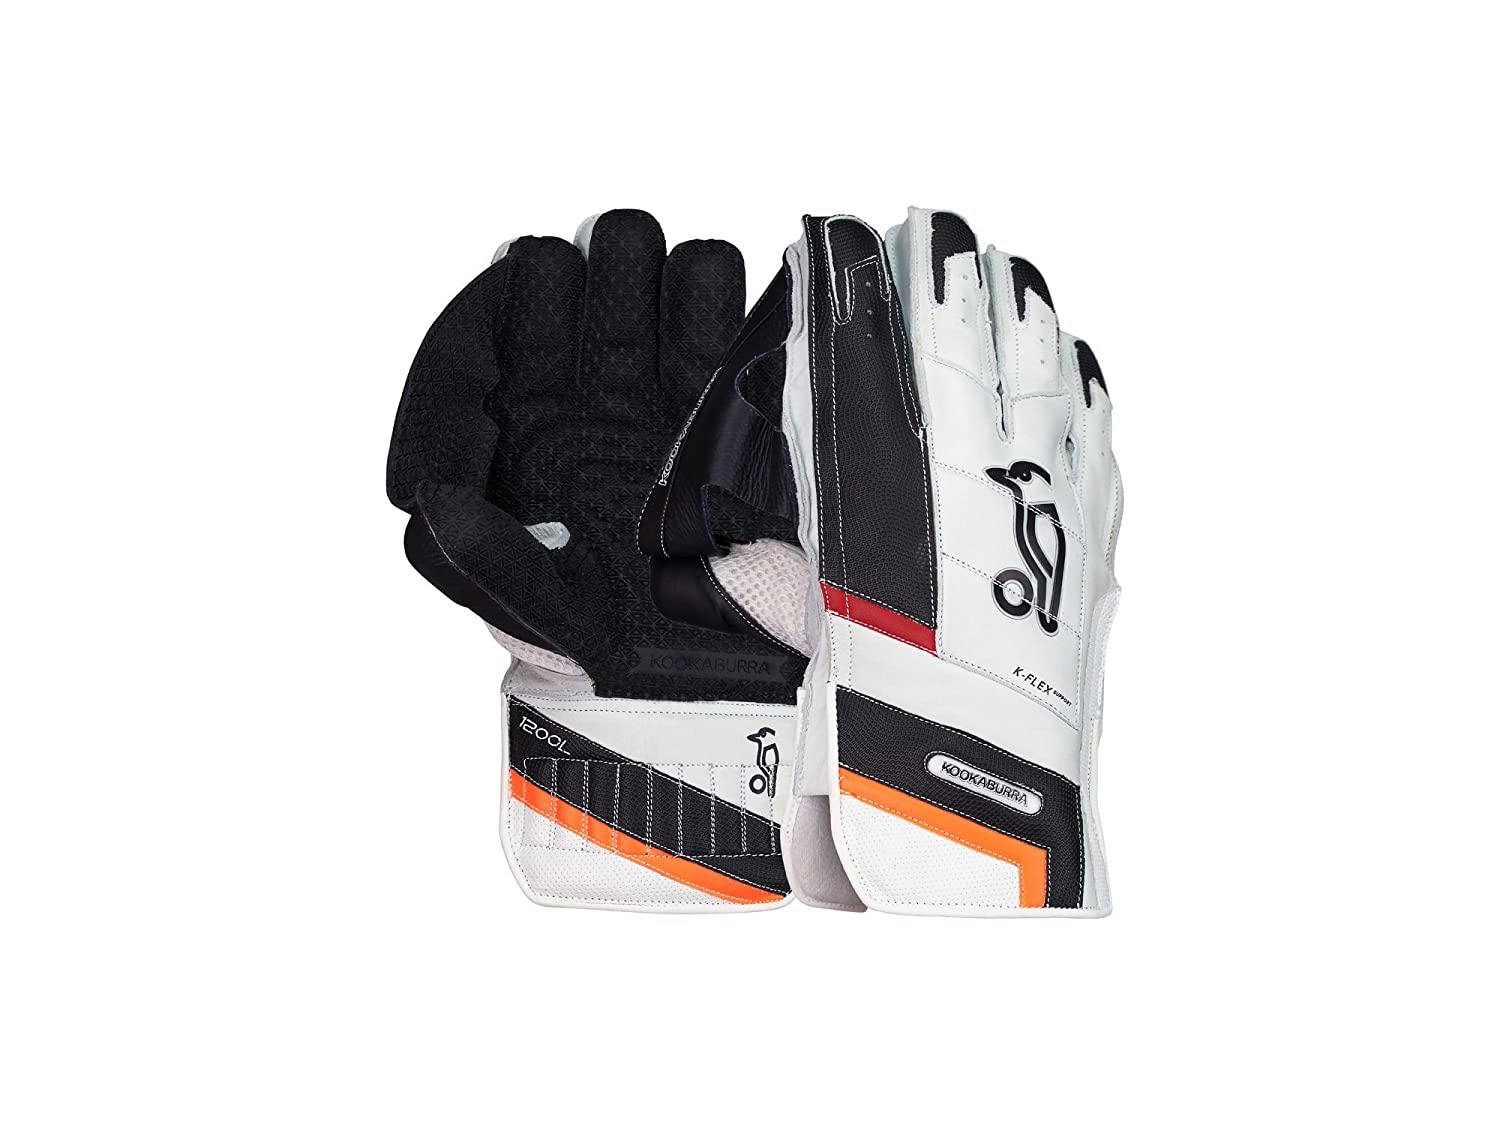 2018 Kookaburra 1200L Wicket Keeping Gloves